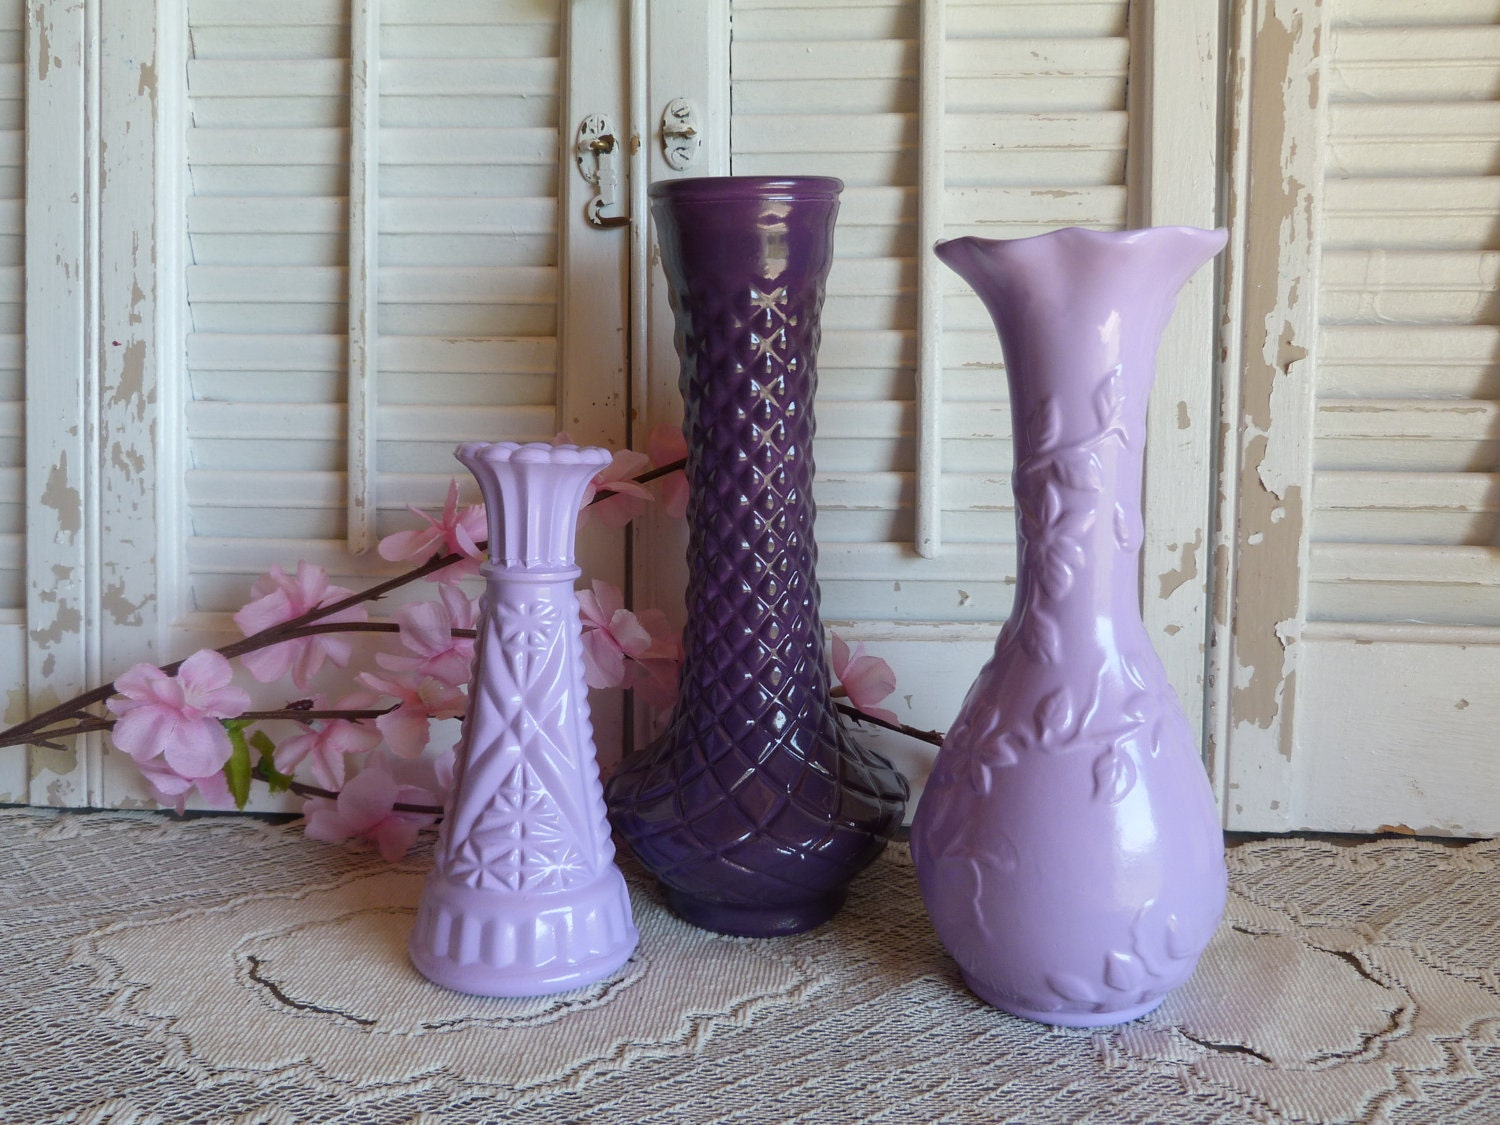 Upcycled Painted Purple Vases Set of 3 / Retro Decor / Lavendar Vases Table Top Decor